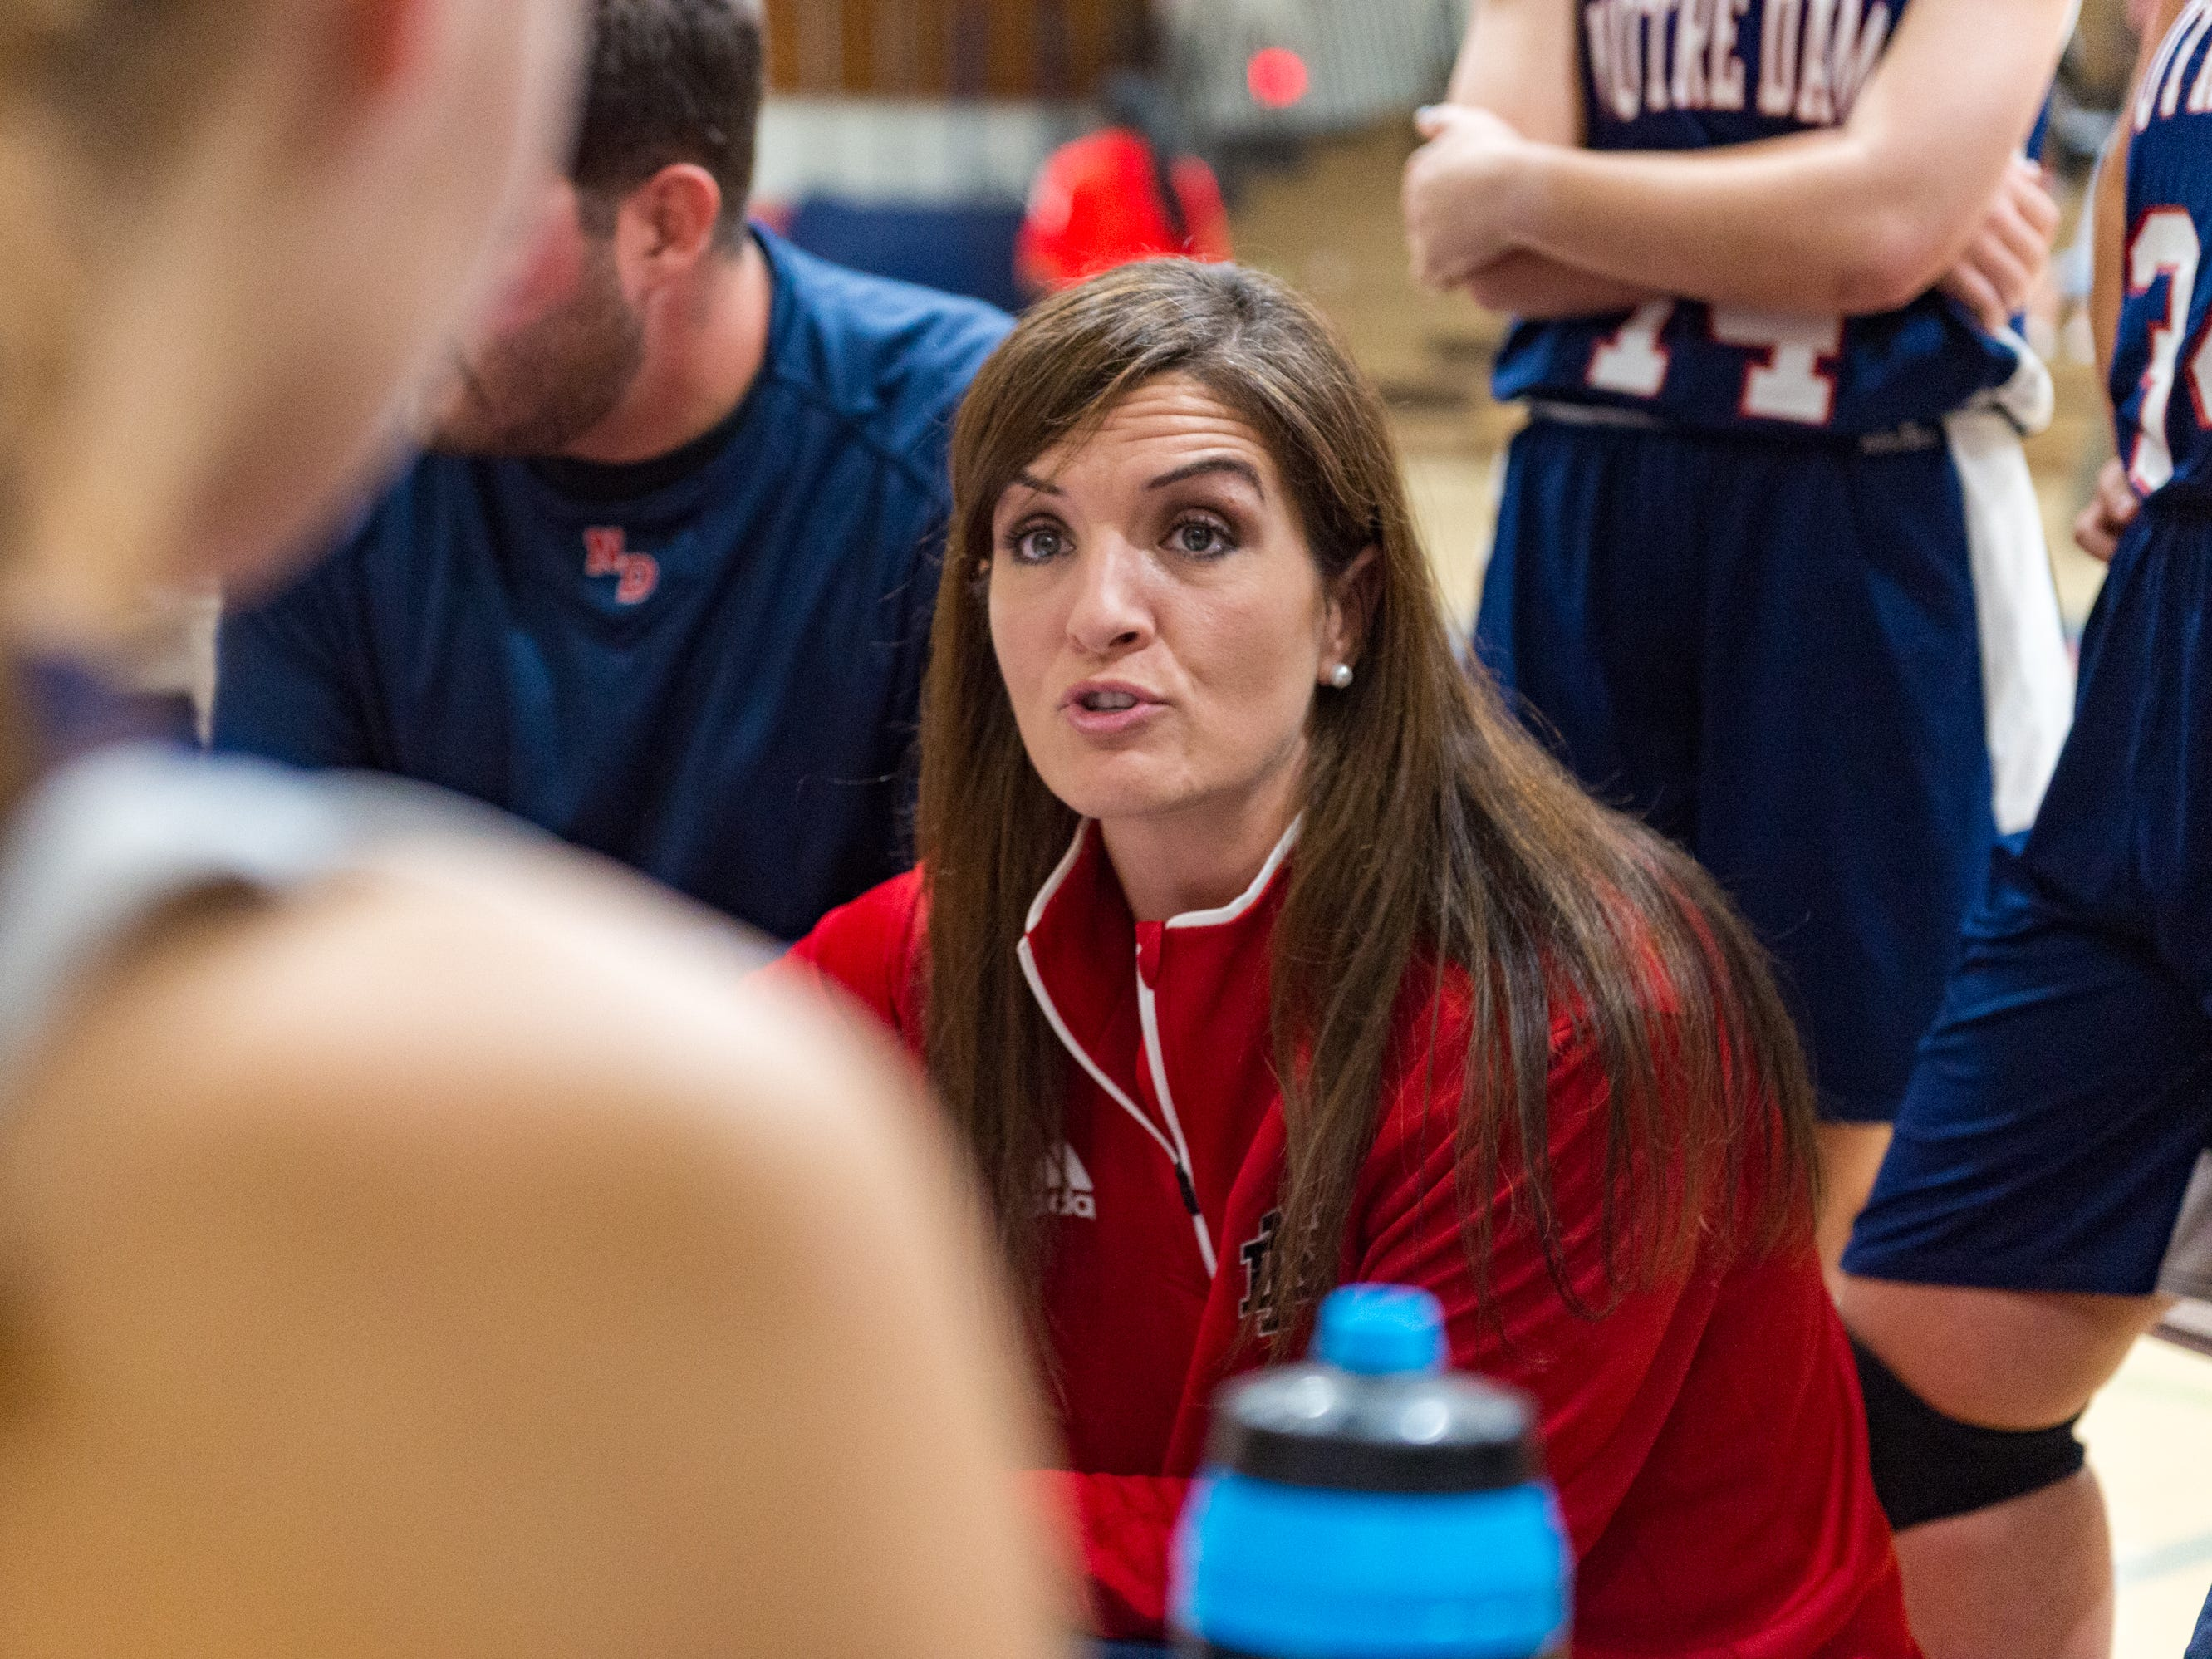 Pios Asst Coach Angie Herbert talks with players during a time out as Notre Dame and North Vermillion face off in Girls Basketball Tournament at North Vermillion High School. Tuesday, Nov. 20, 2018.